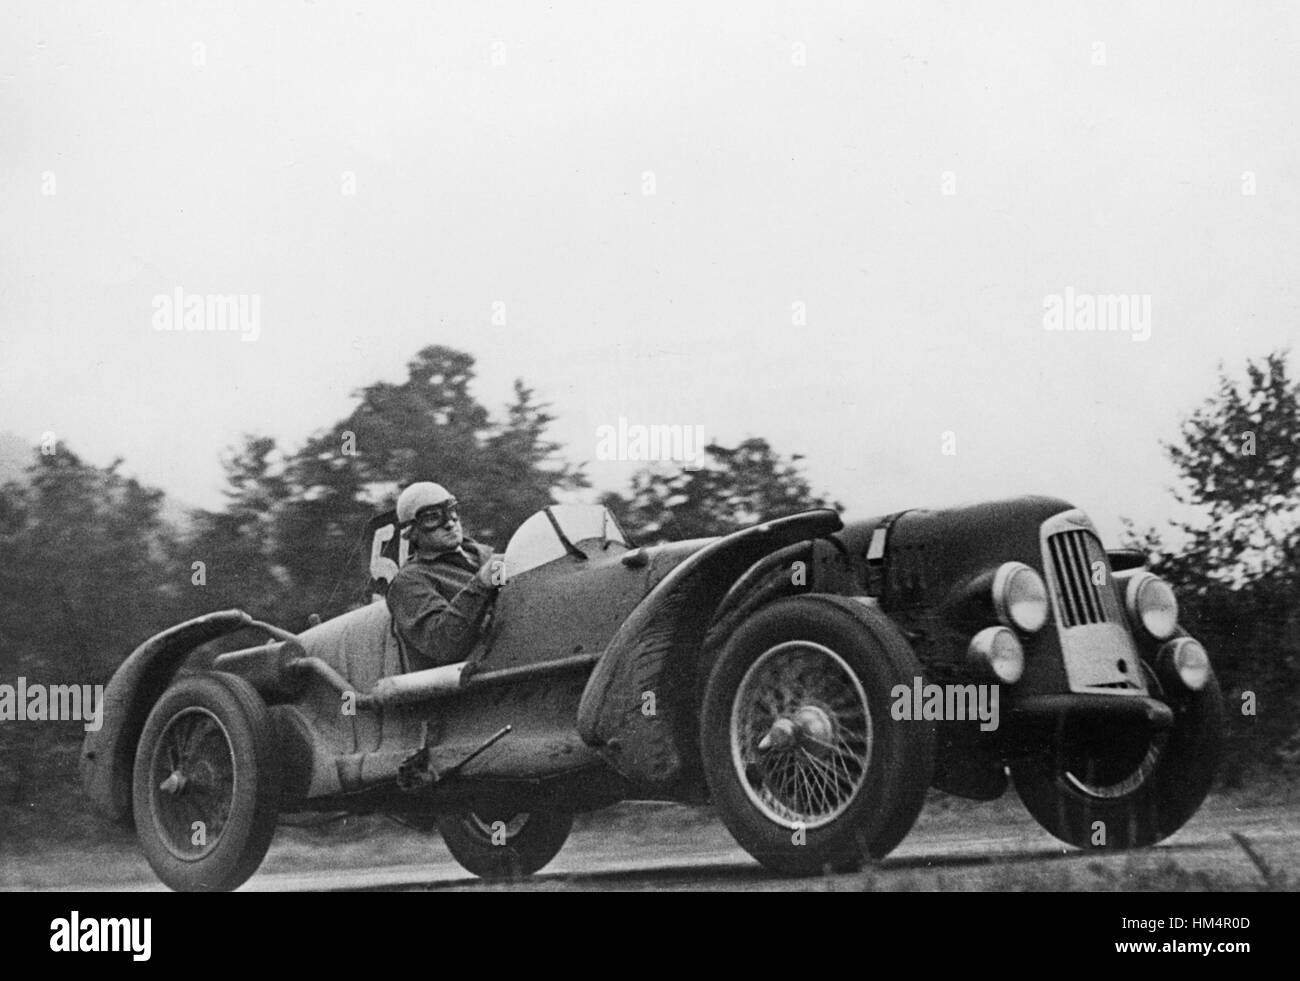 Aston Martin 2 litre DB1 at Spa 1948. Horsfall and Johnson, outright winners. - Stock Image